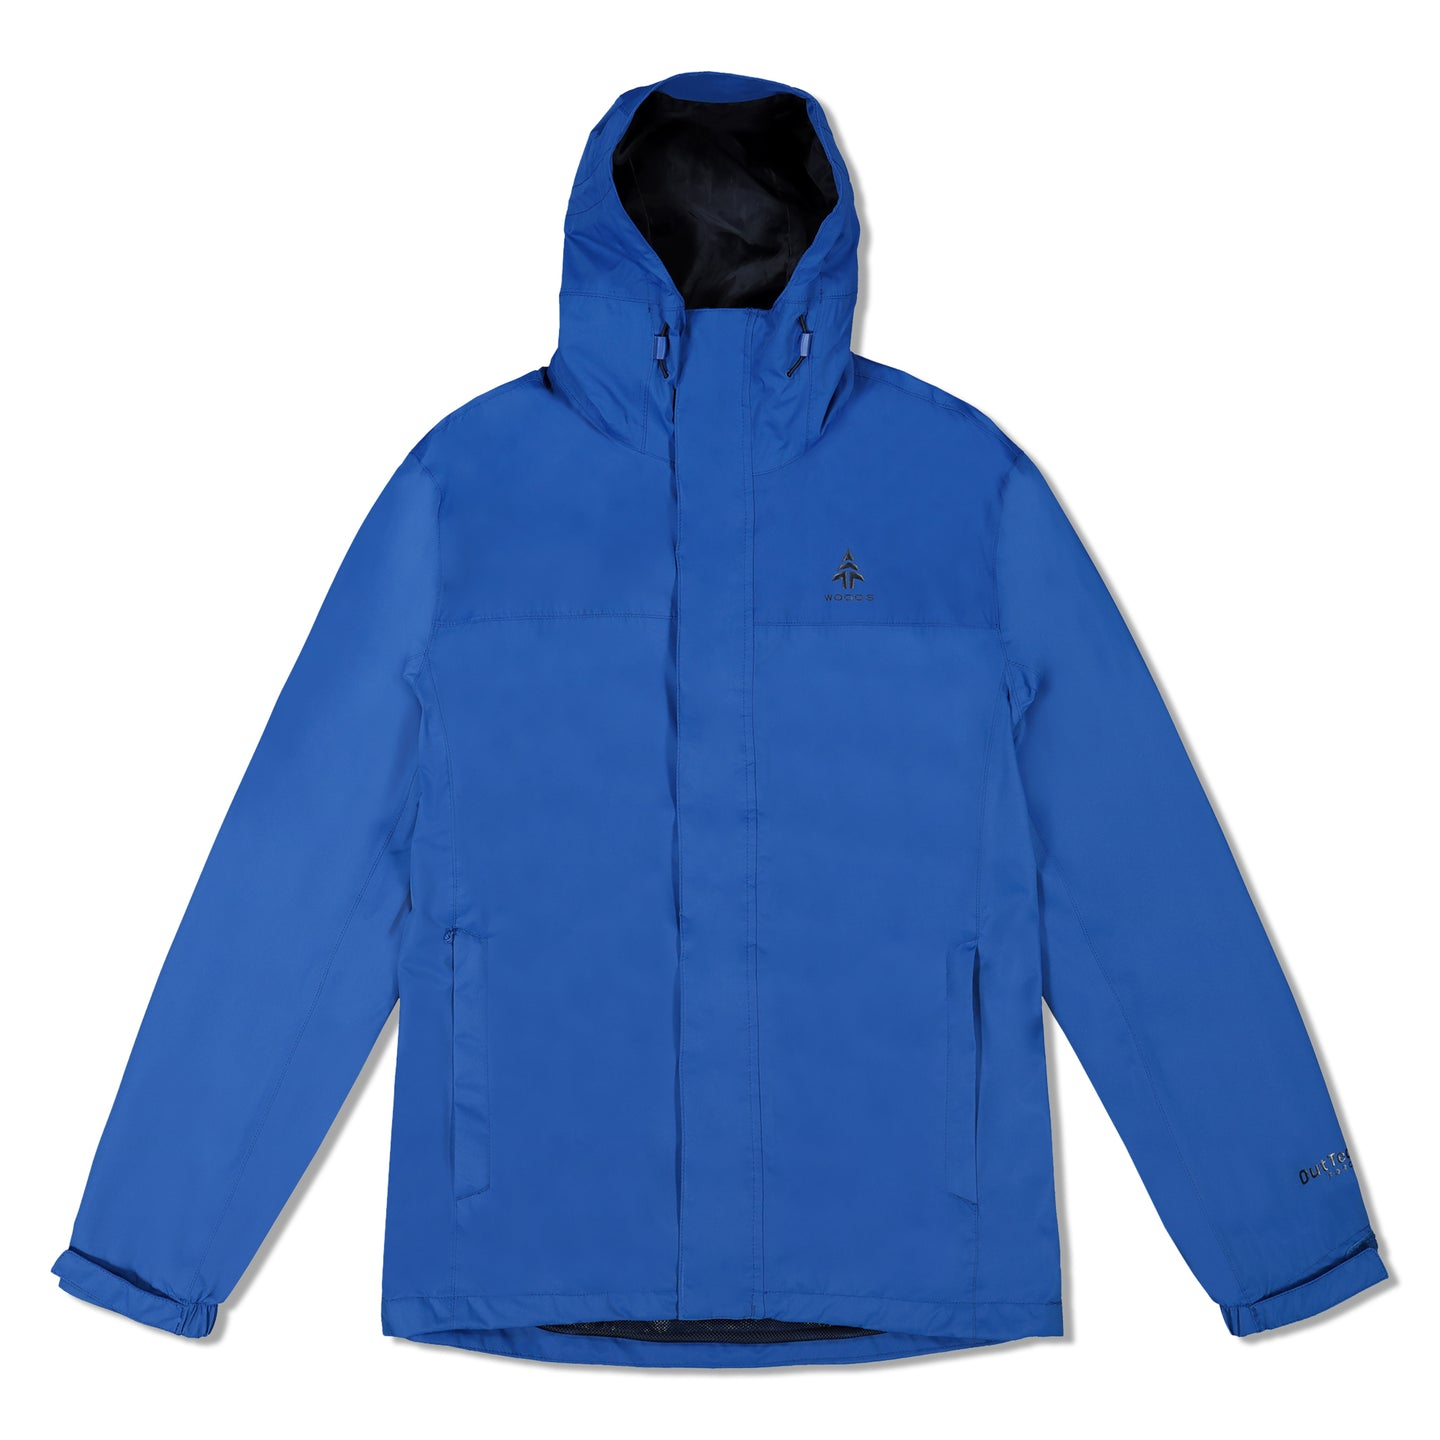 Woods Men's Toba Water-Resistant 2-Layer Shell Hooded Rain Jacket - Blue